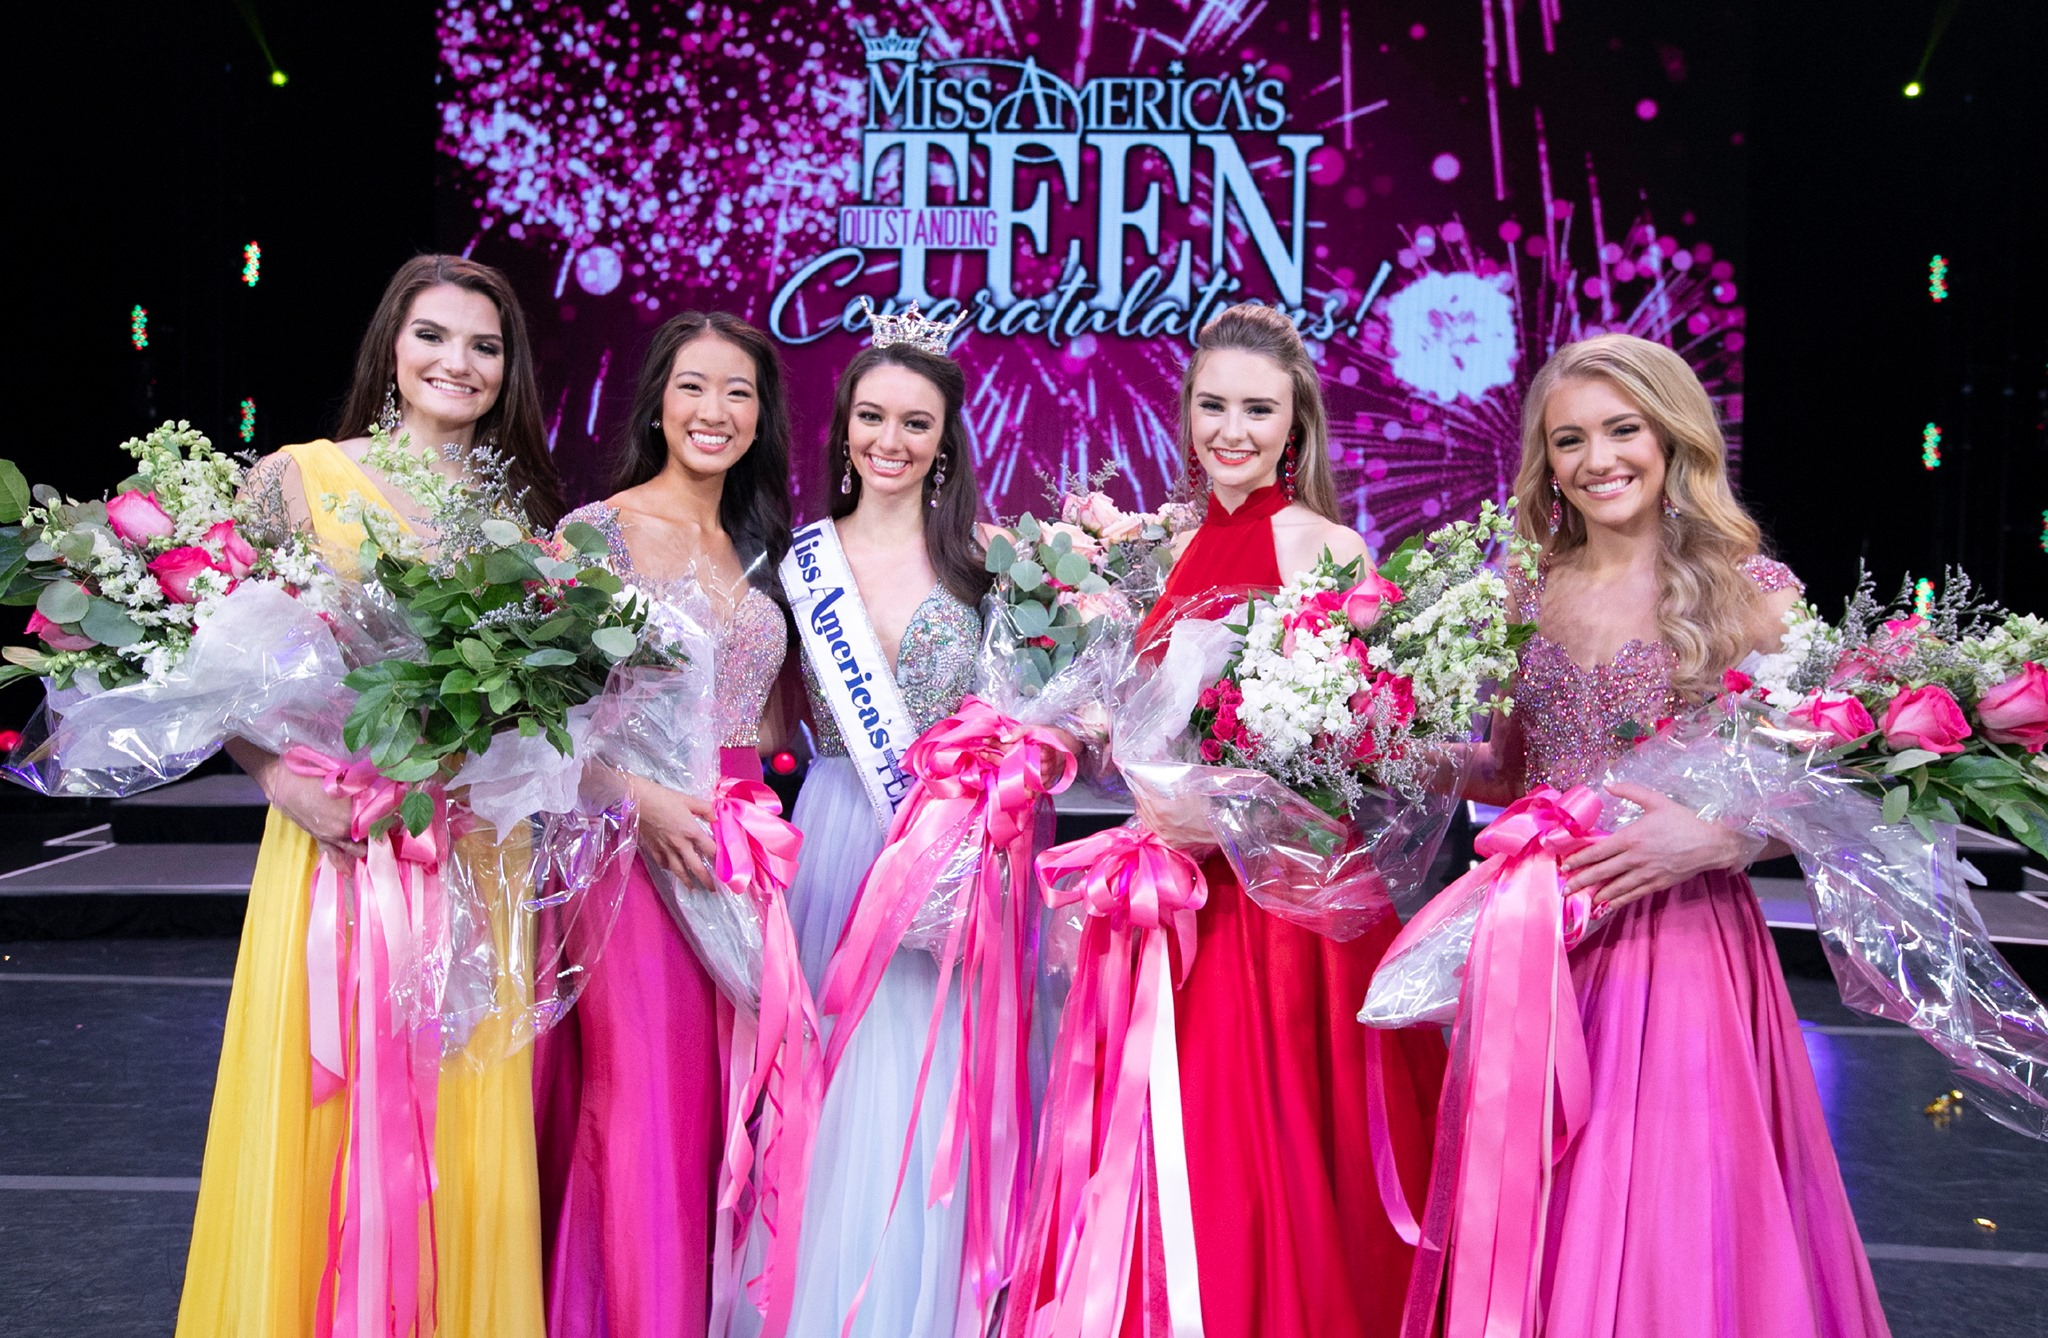 Miss America's Outstanding TEEN 2019 Payton May and finalists.